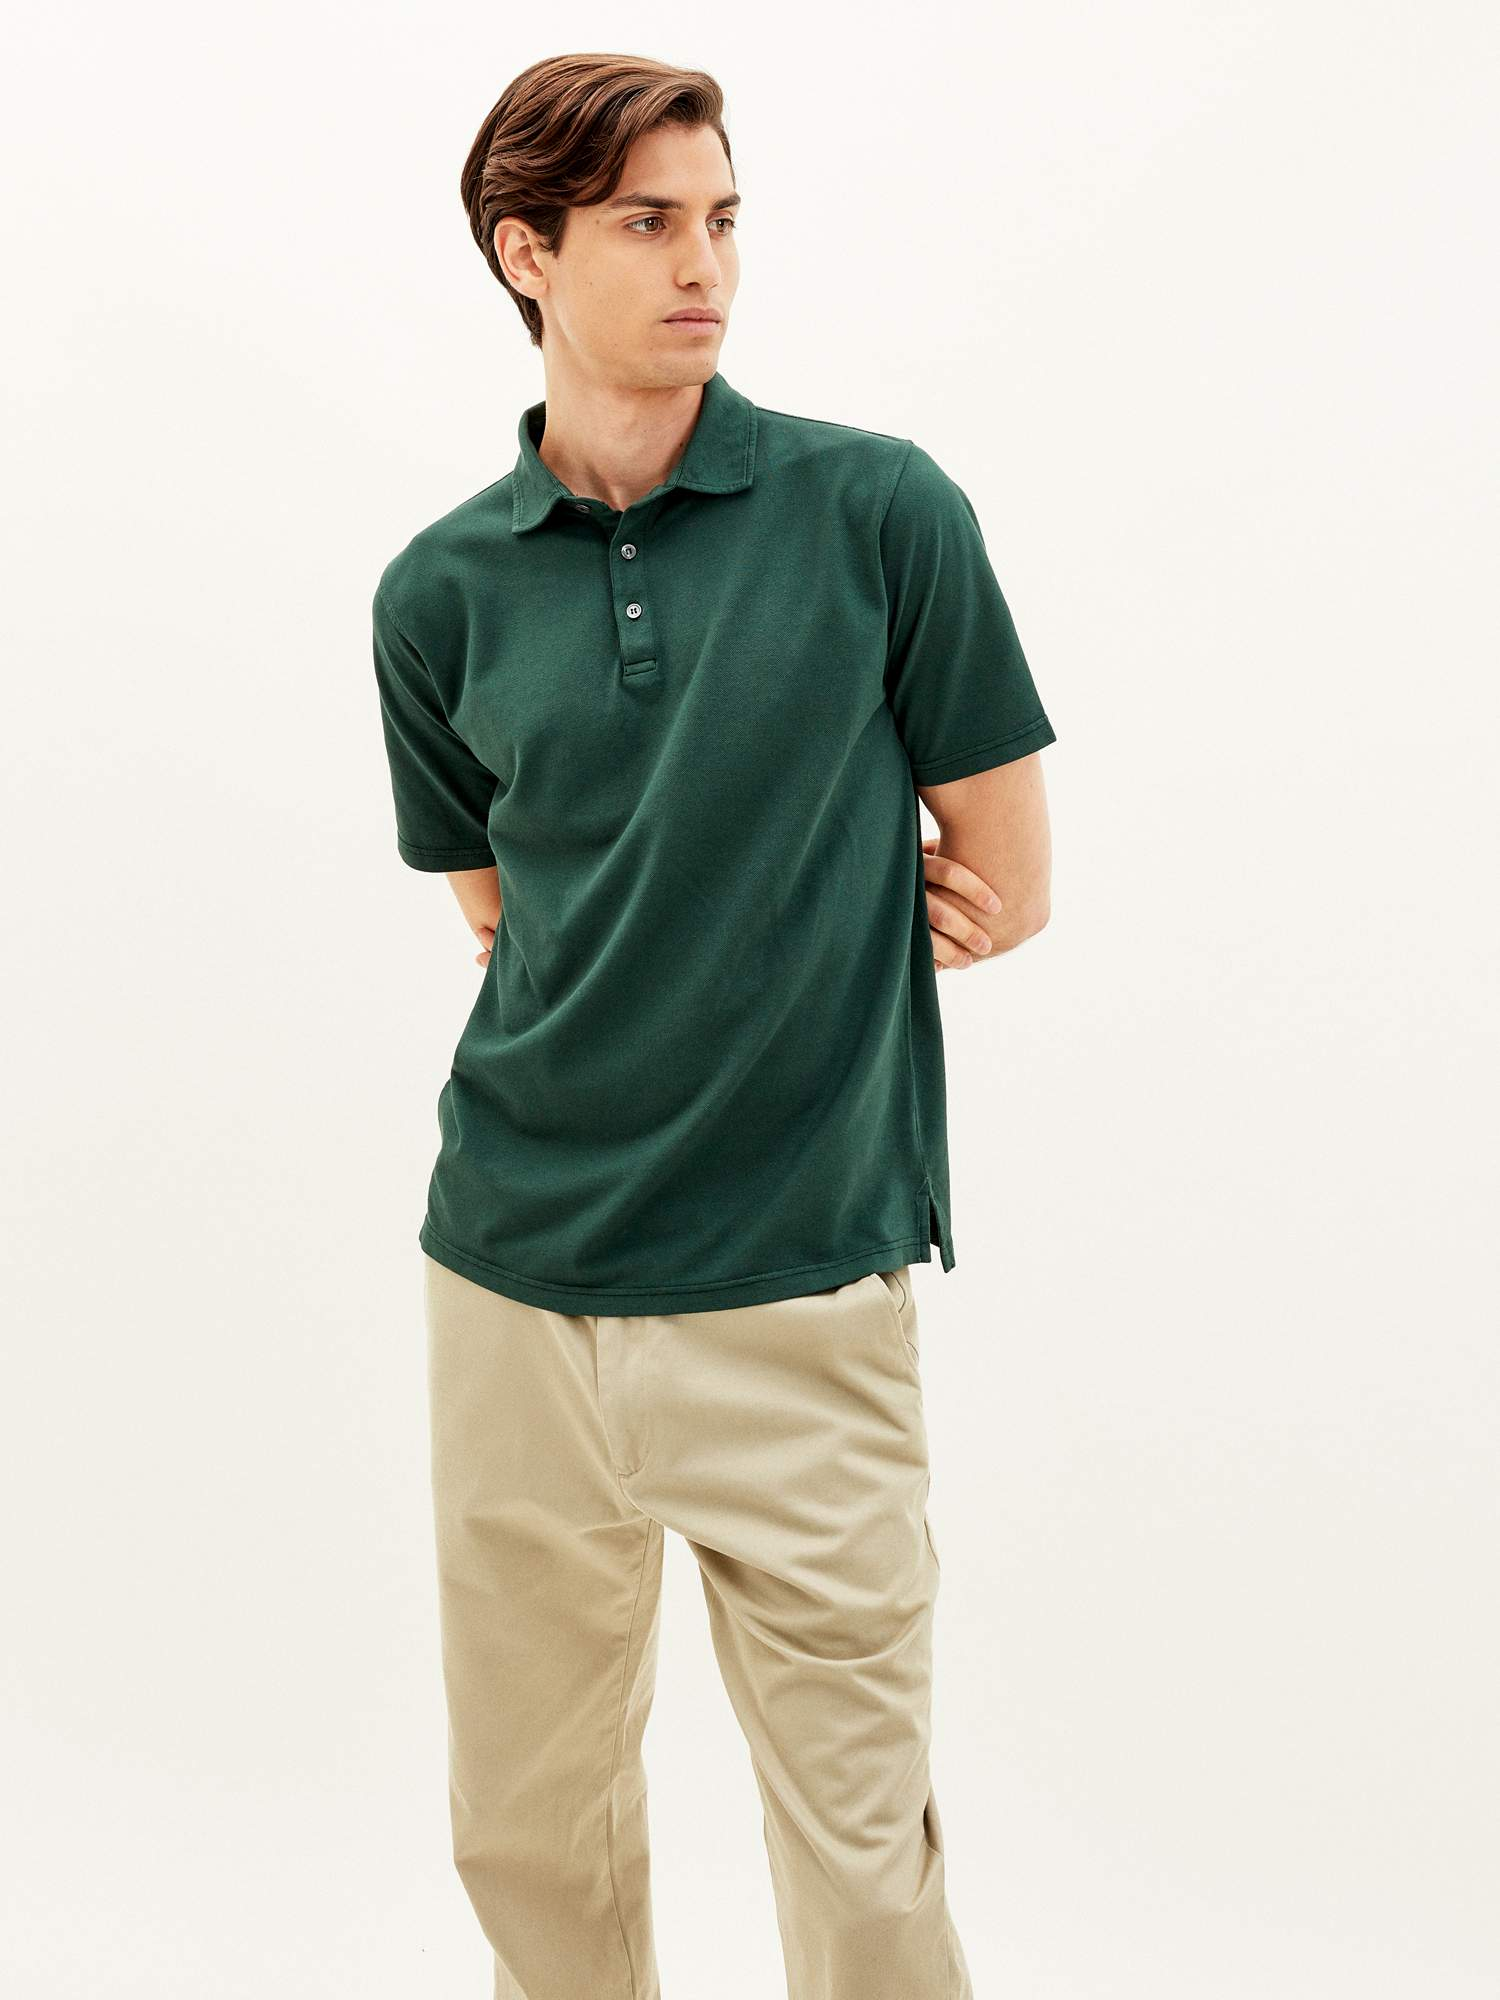 20200709-trunk-polo-shirt-forest-green_041.jpg